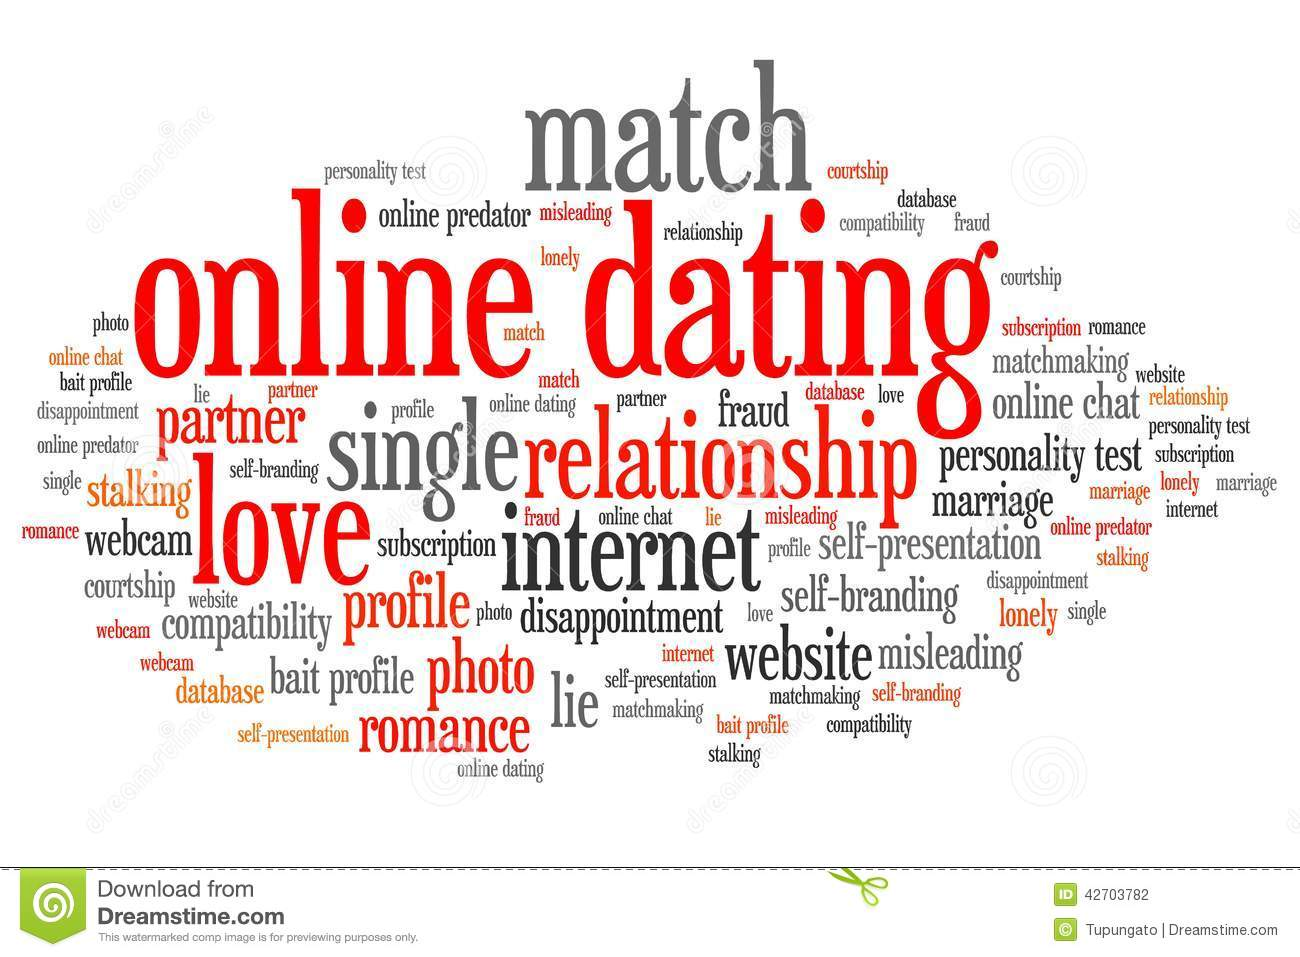 midland online hookup & dating 100% free online dating in midland 1,500,000 daily active members.